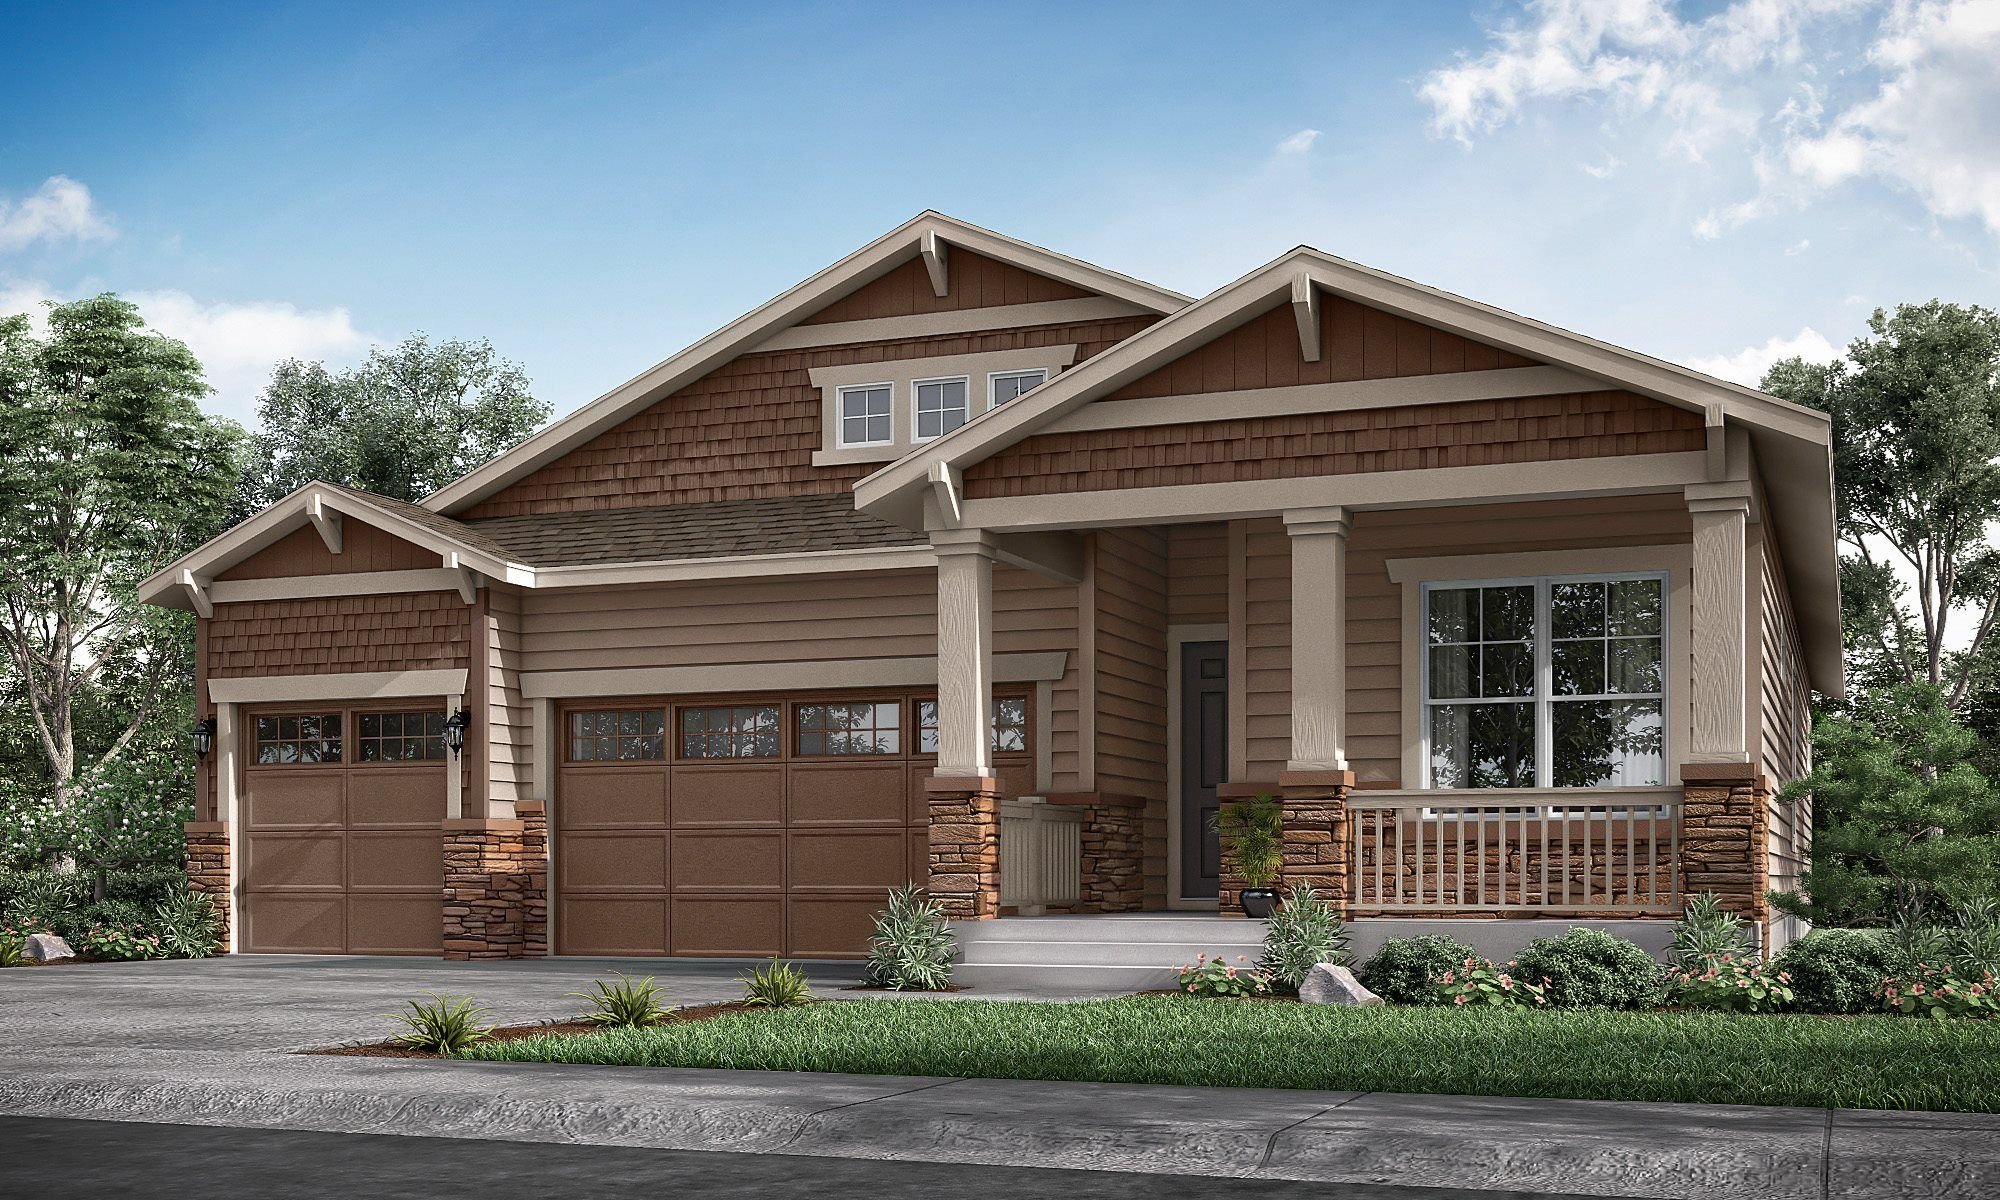 Single Family for Sale at Heritage Todd Creek: The Heritage Collection - Hamilton 8052 E. 151st Place Thornton, Colorado 80602 United States